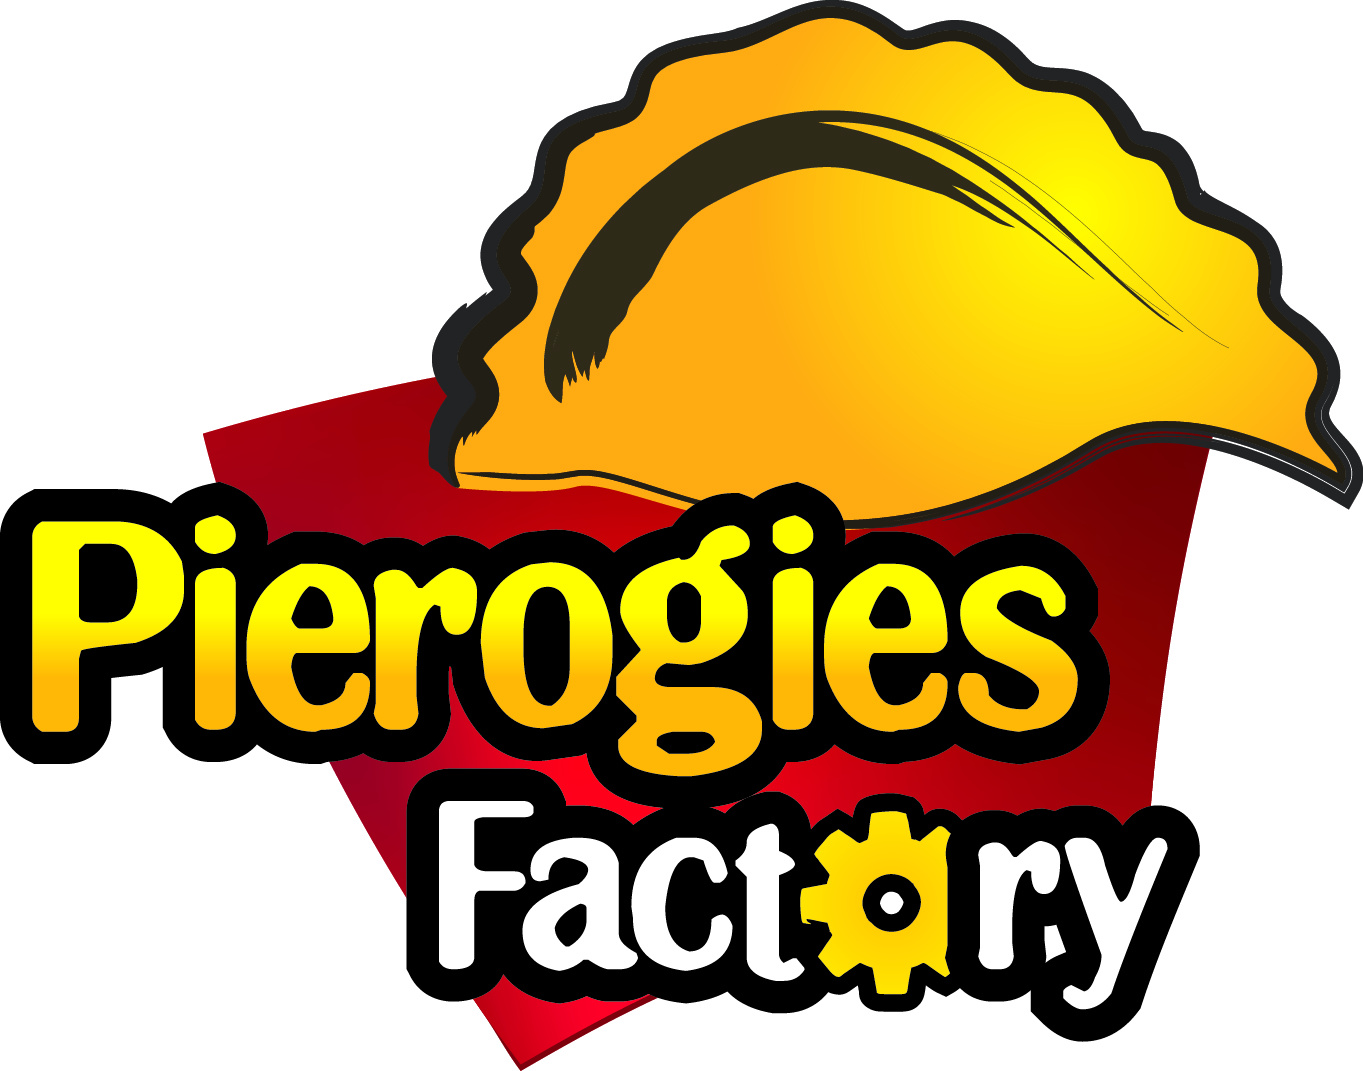 Pierogies Factory logo